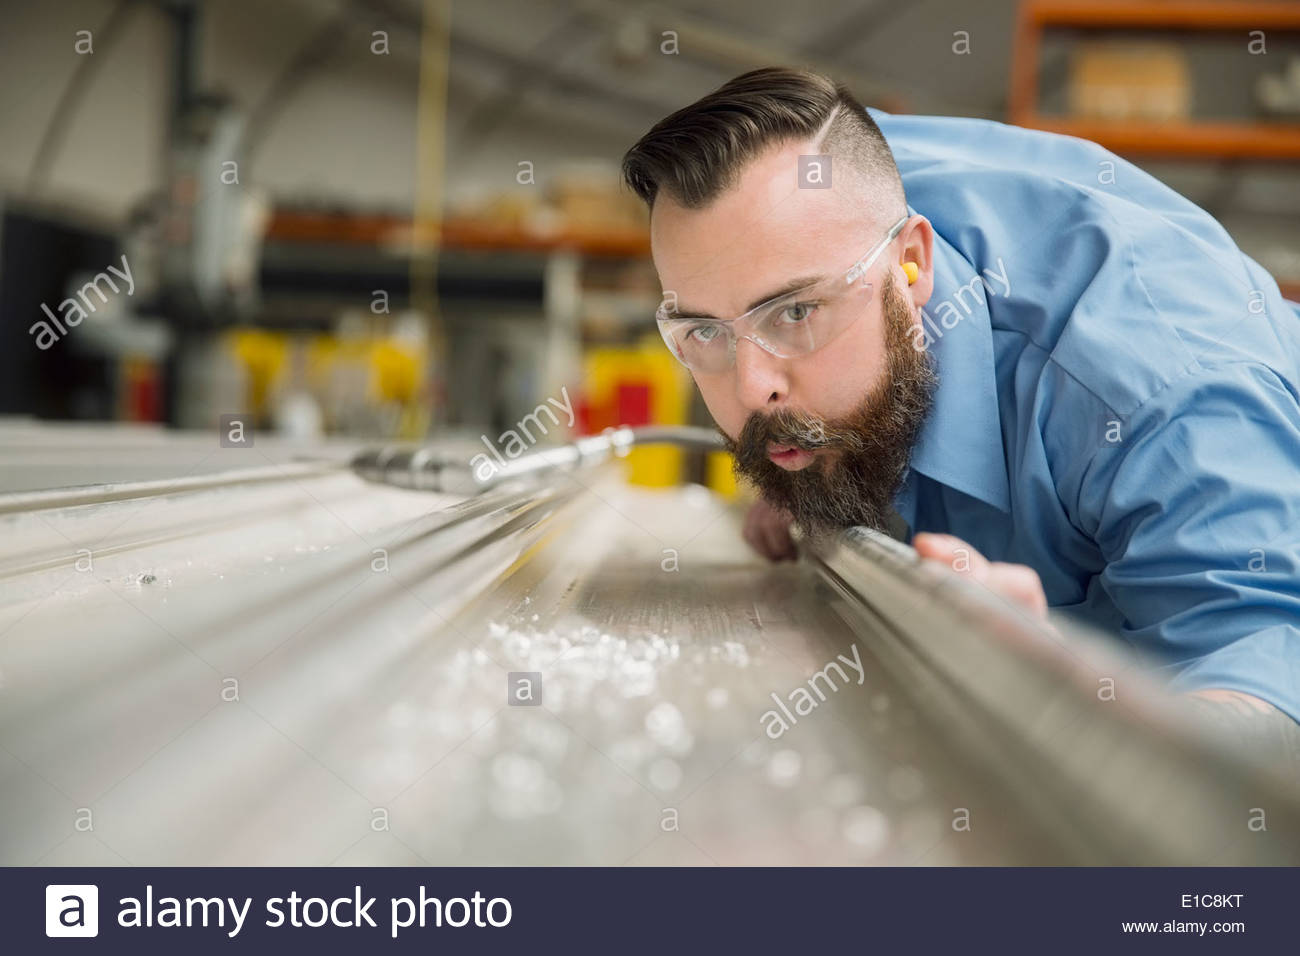 Worker blowing shavings from metal in manufacturing plant - Stock Image